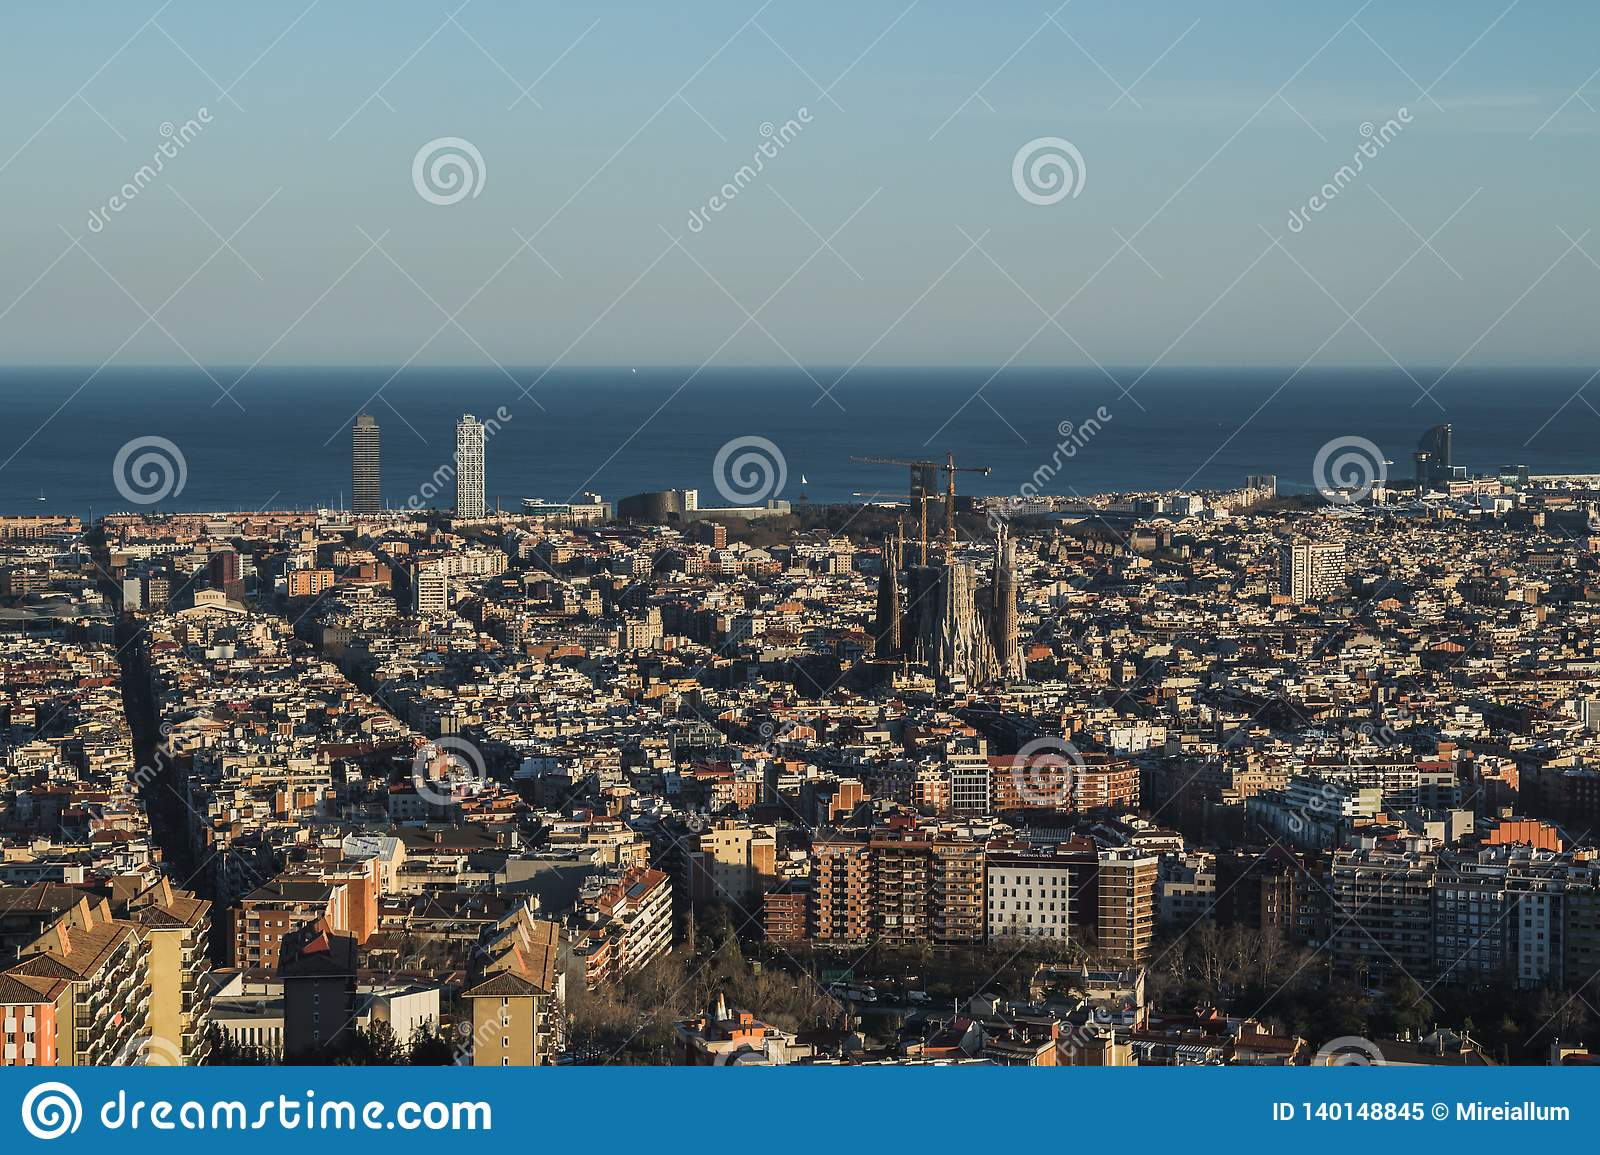 This is the spectacular view of Barcelona, Spain. In the picture it can be spotted the Sagrada Familia Sacred Family of Antoni